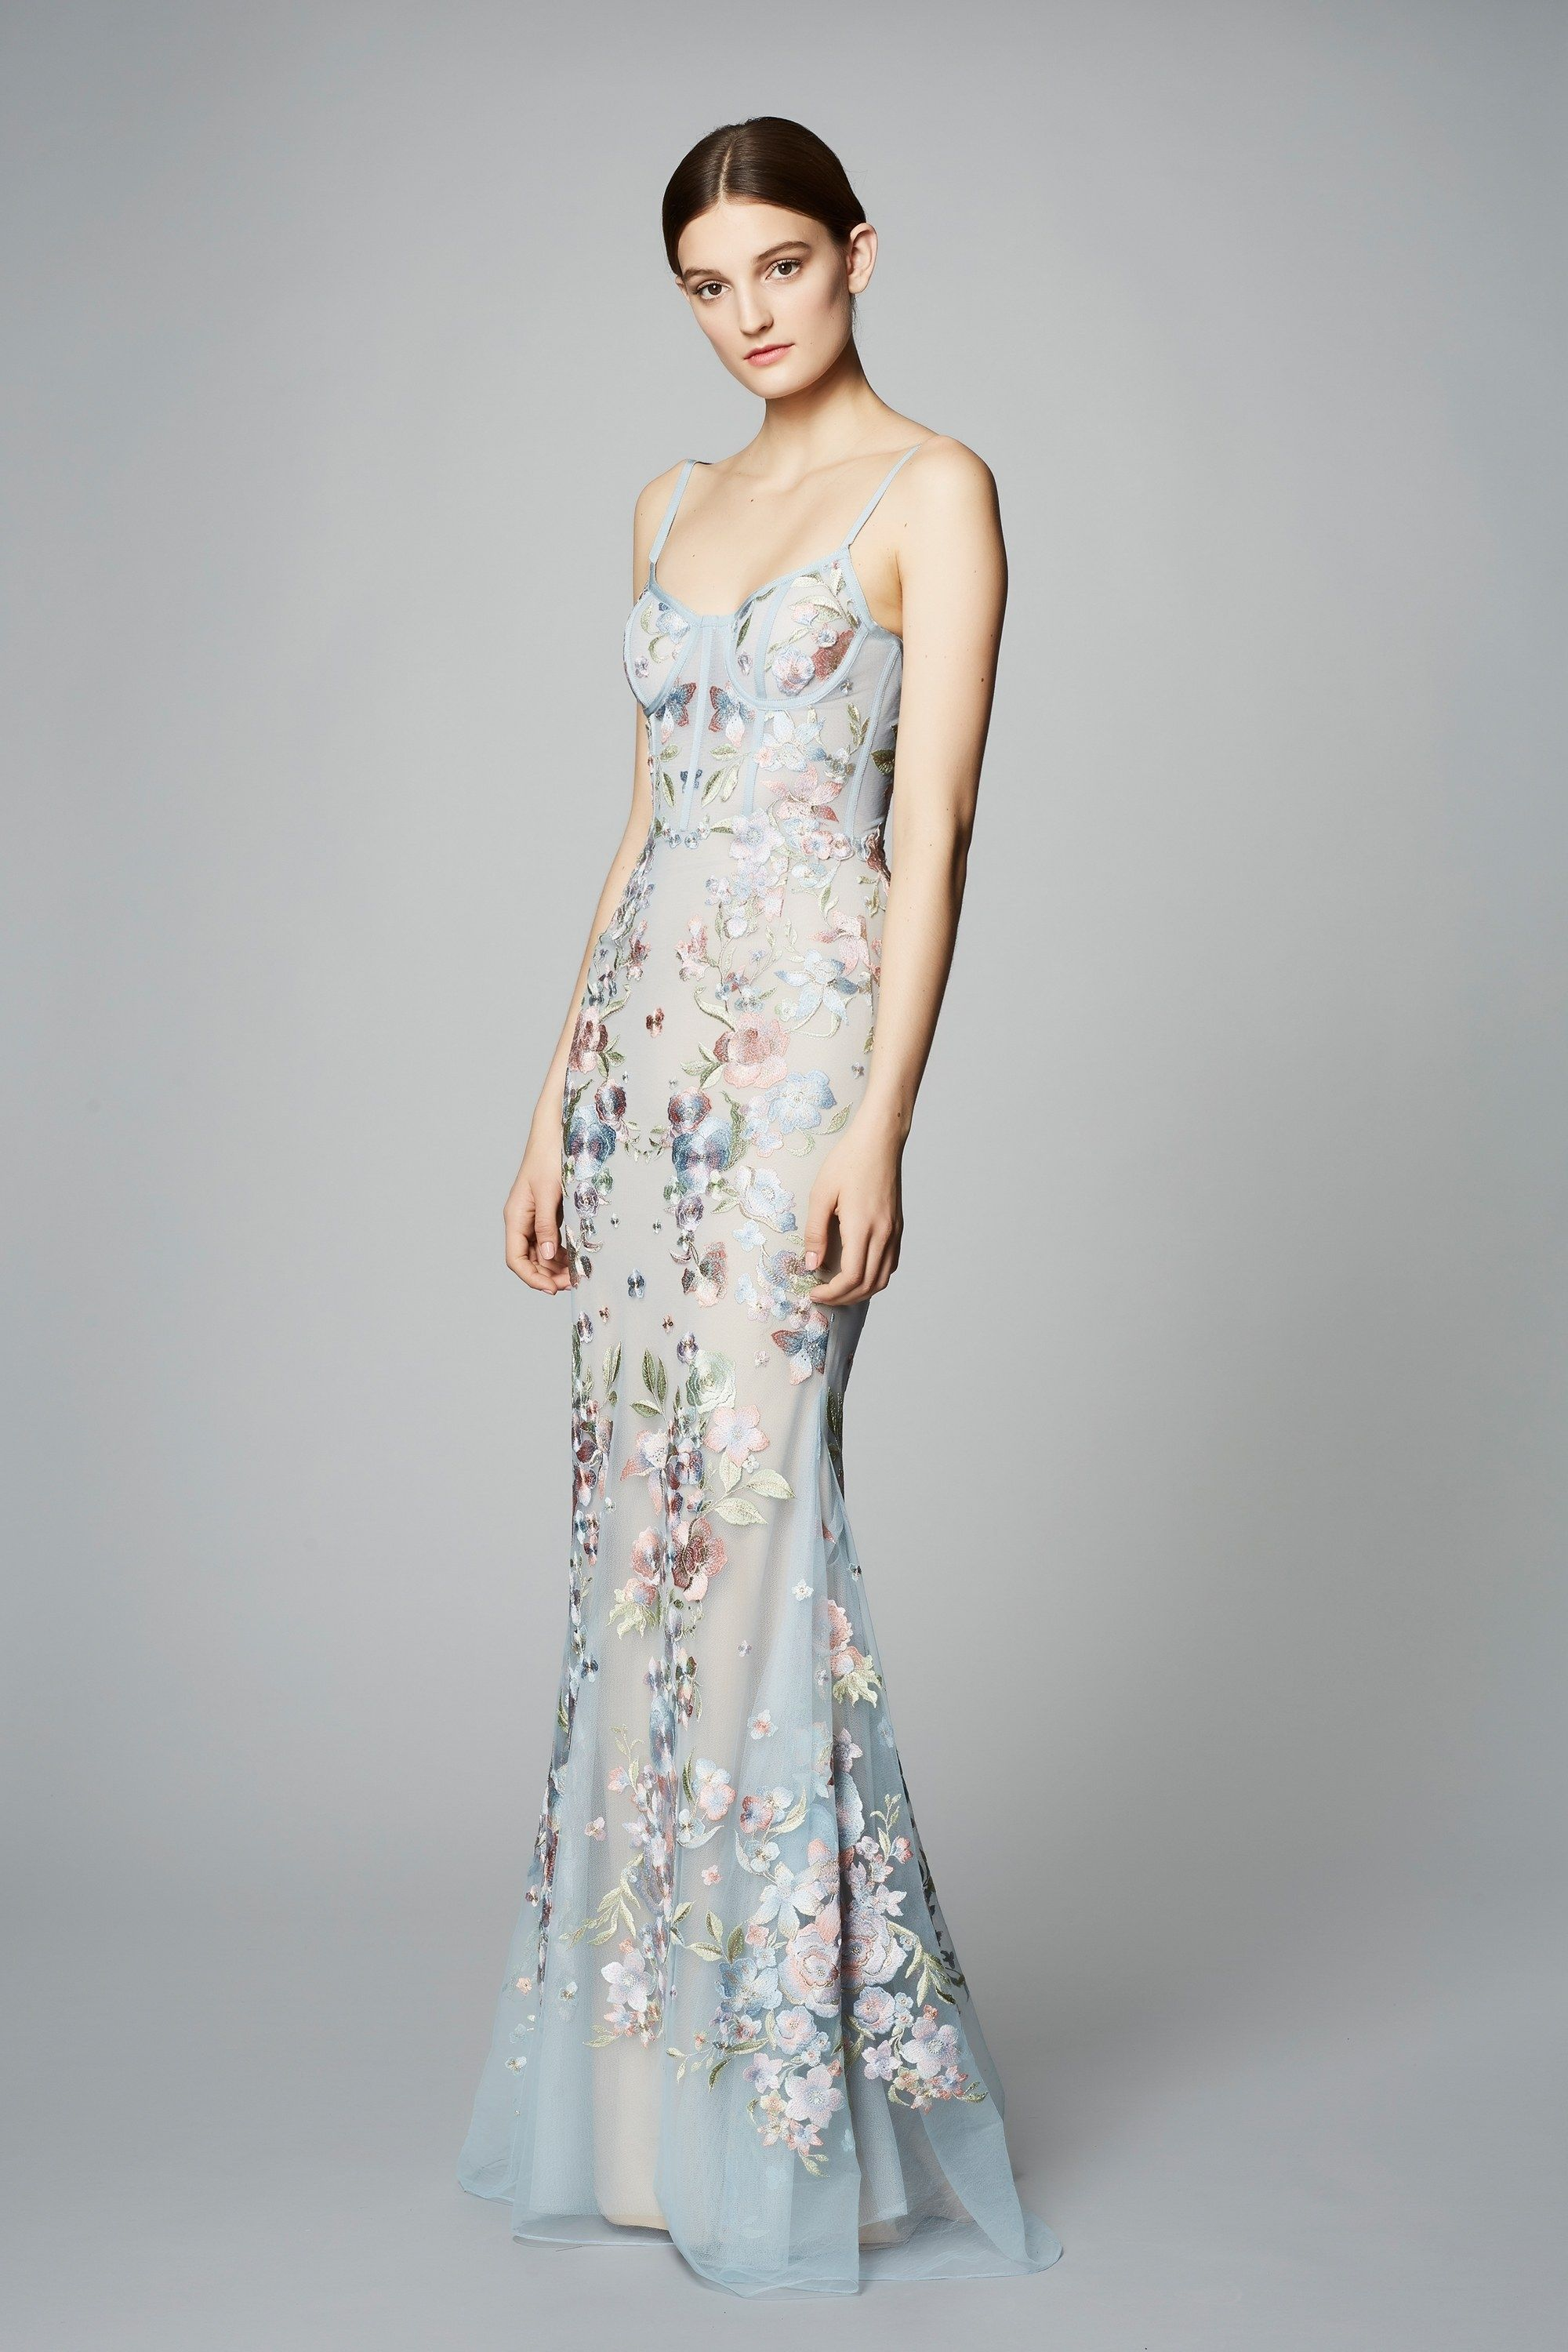 b11f62e8b6fd79 MARCHESA NOTTE SLEEVELESS EMBROIDERED TULLE GOWN.  marchesanotte  cloth